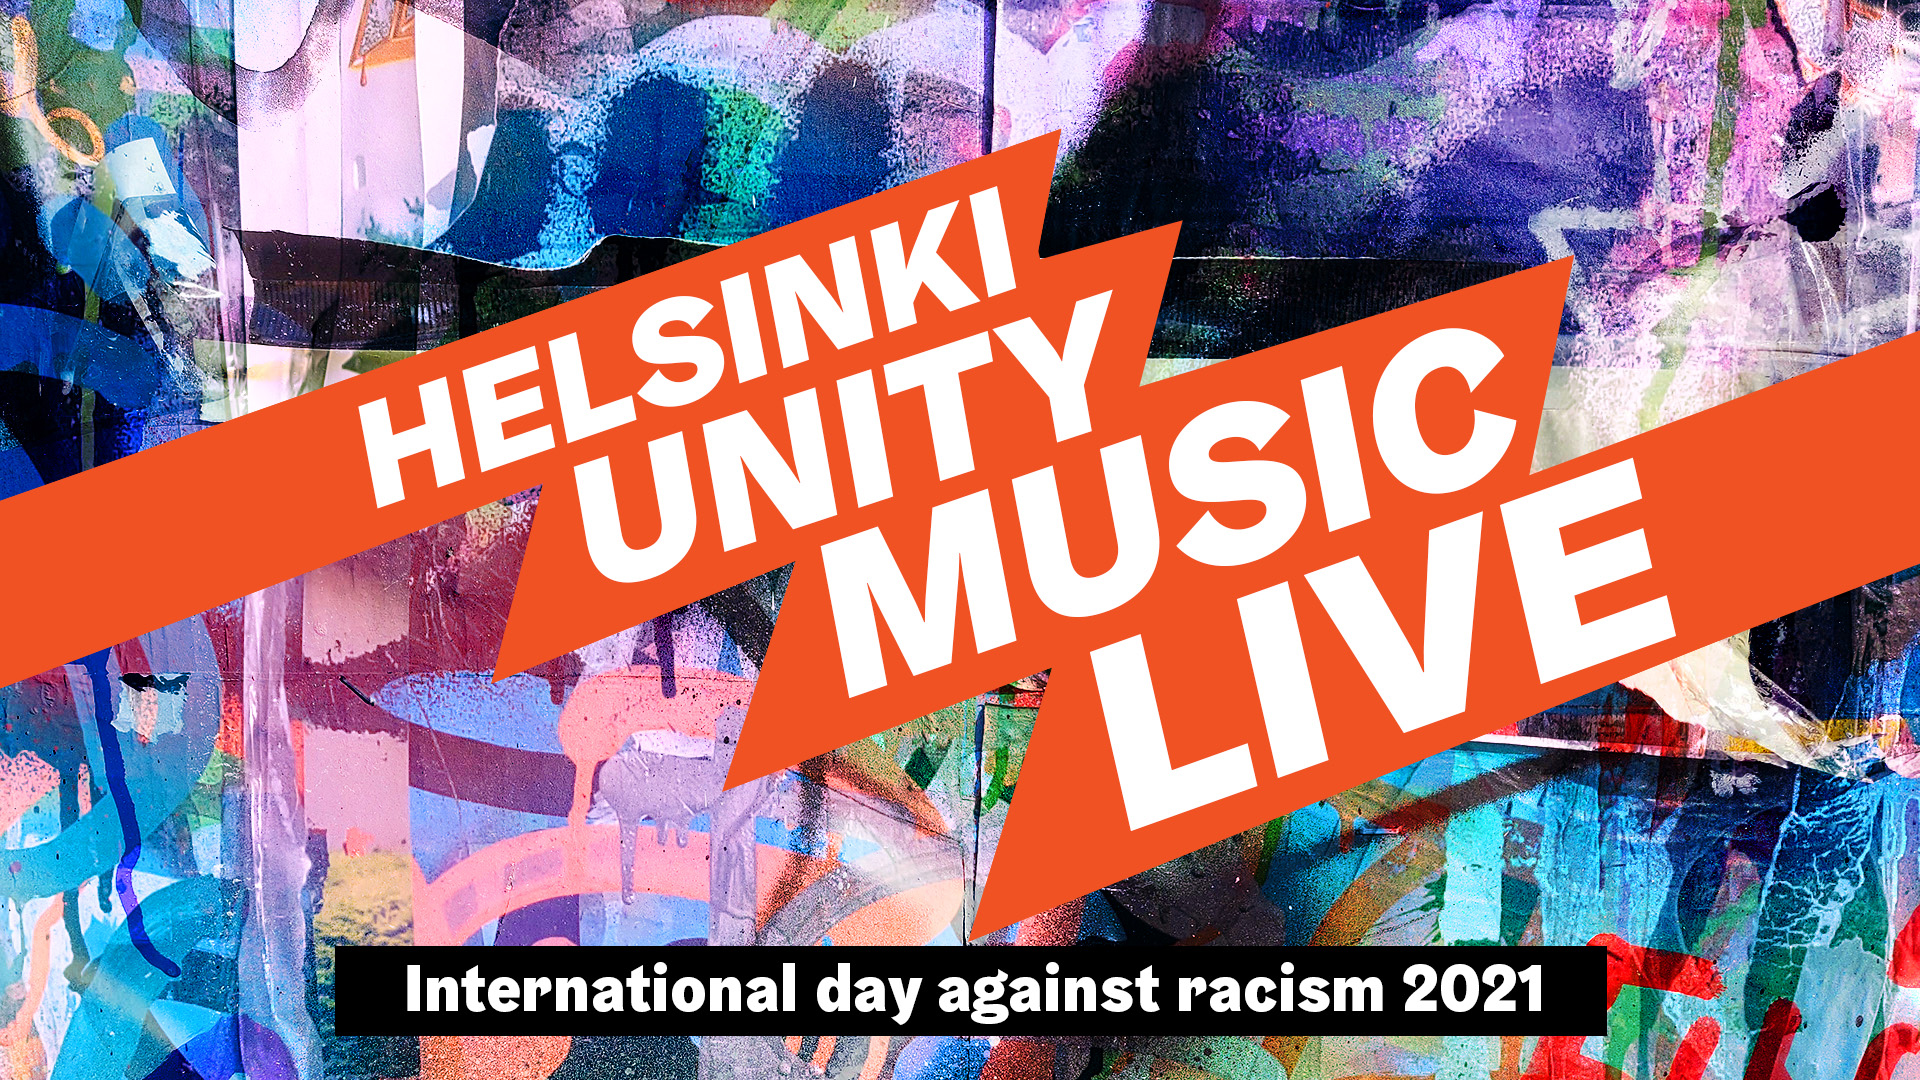 The International Day Against Racism: Talks against racism + Helsinki Unity Music - live